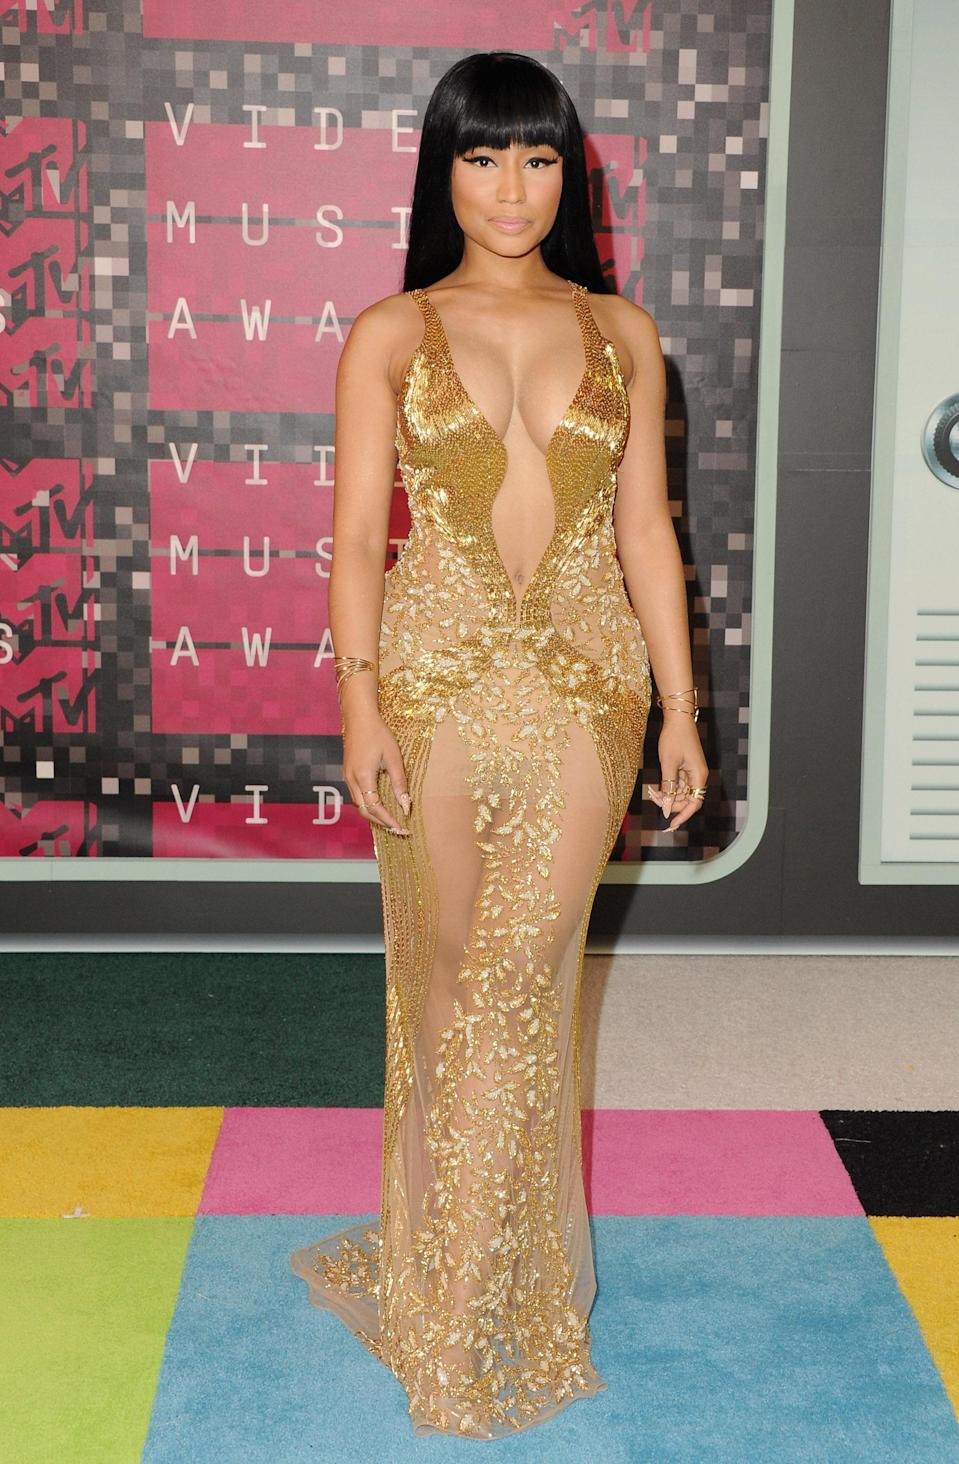 Nicki Minaj was gilded in a sheer embroidered Labourjoisie gown. Her looks from the VMAs run the entire style gamut and this was a definite favorite.